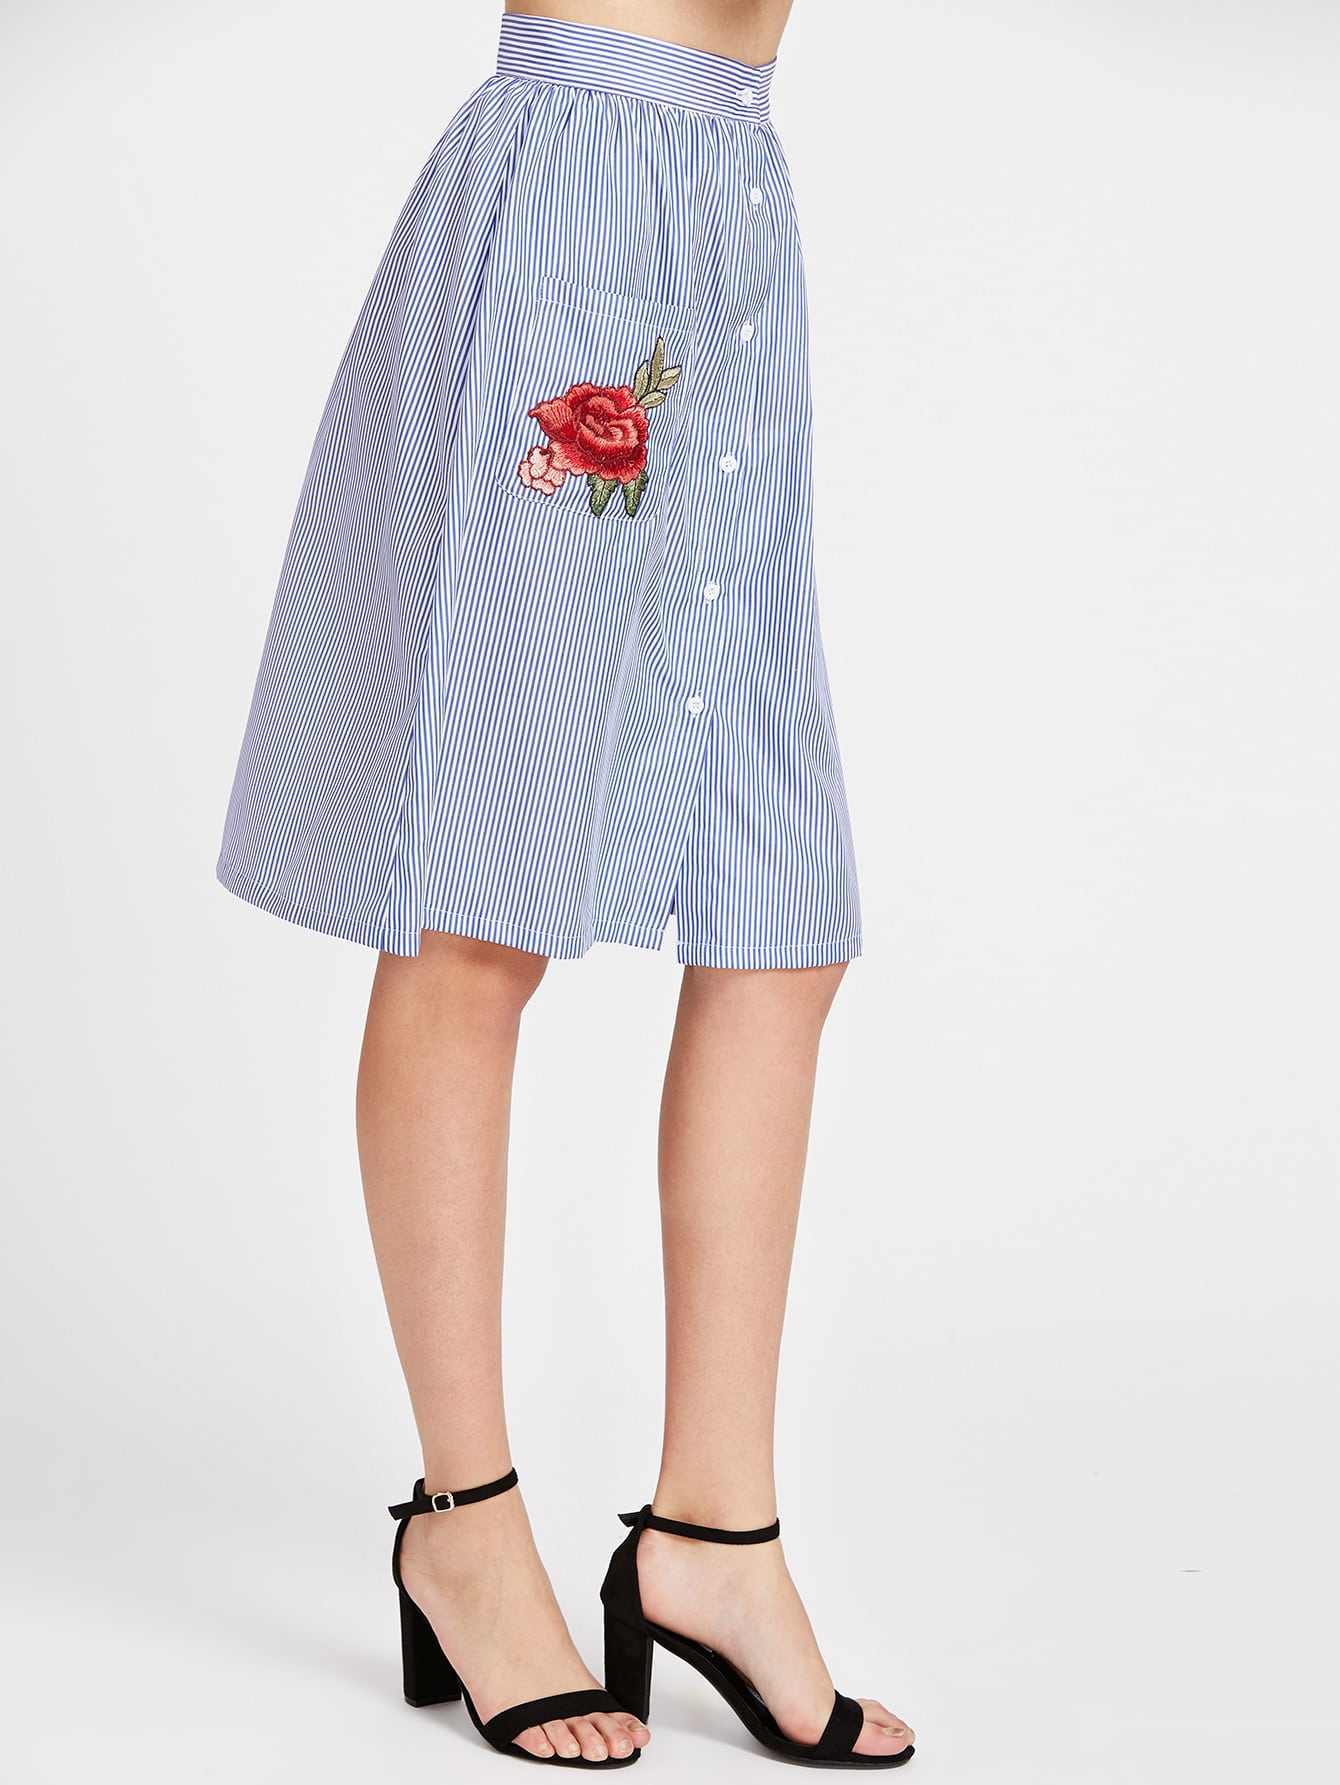 Button front striped skirt with embroidered rose applique